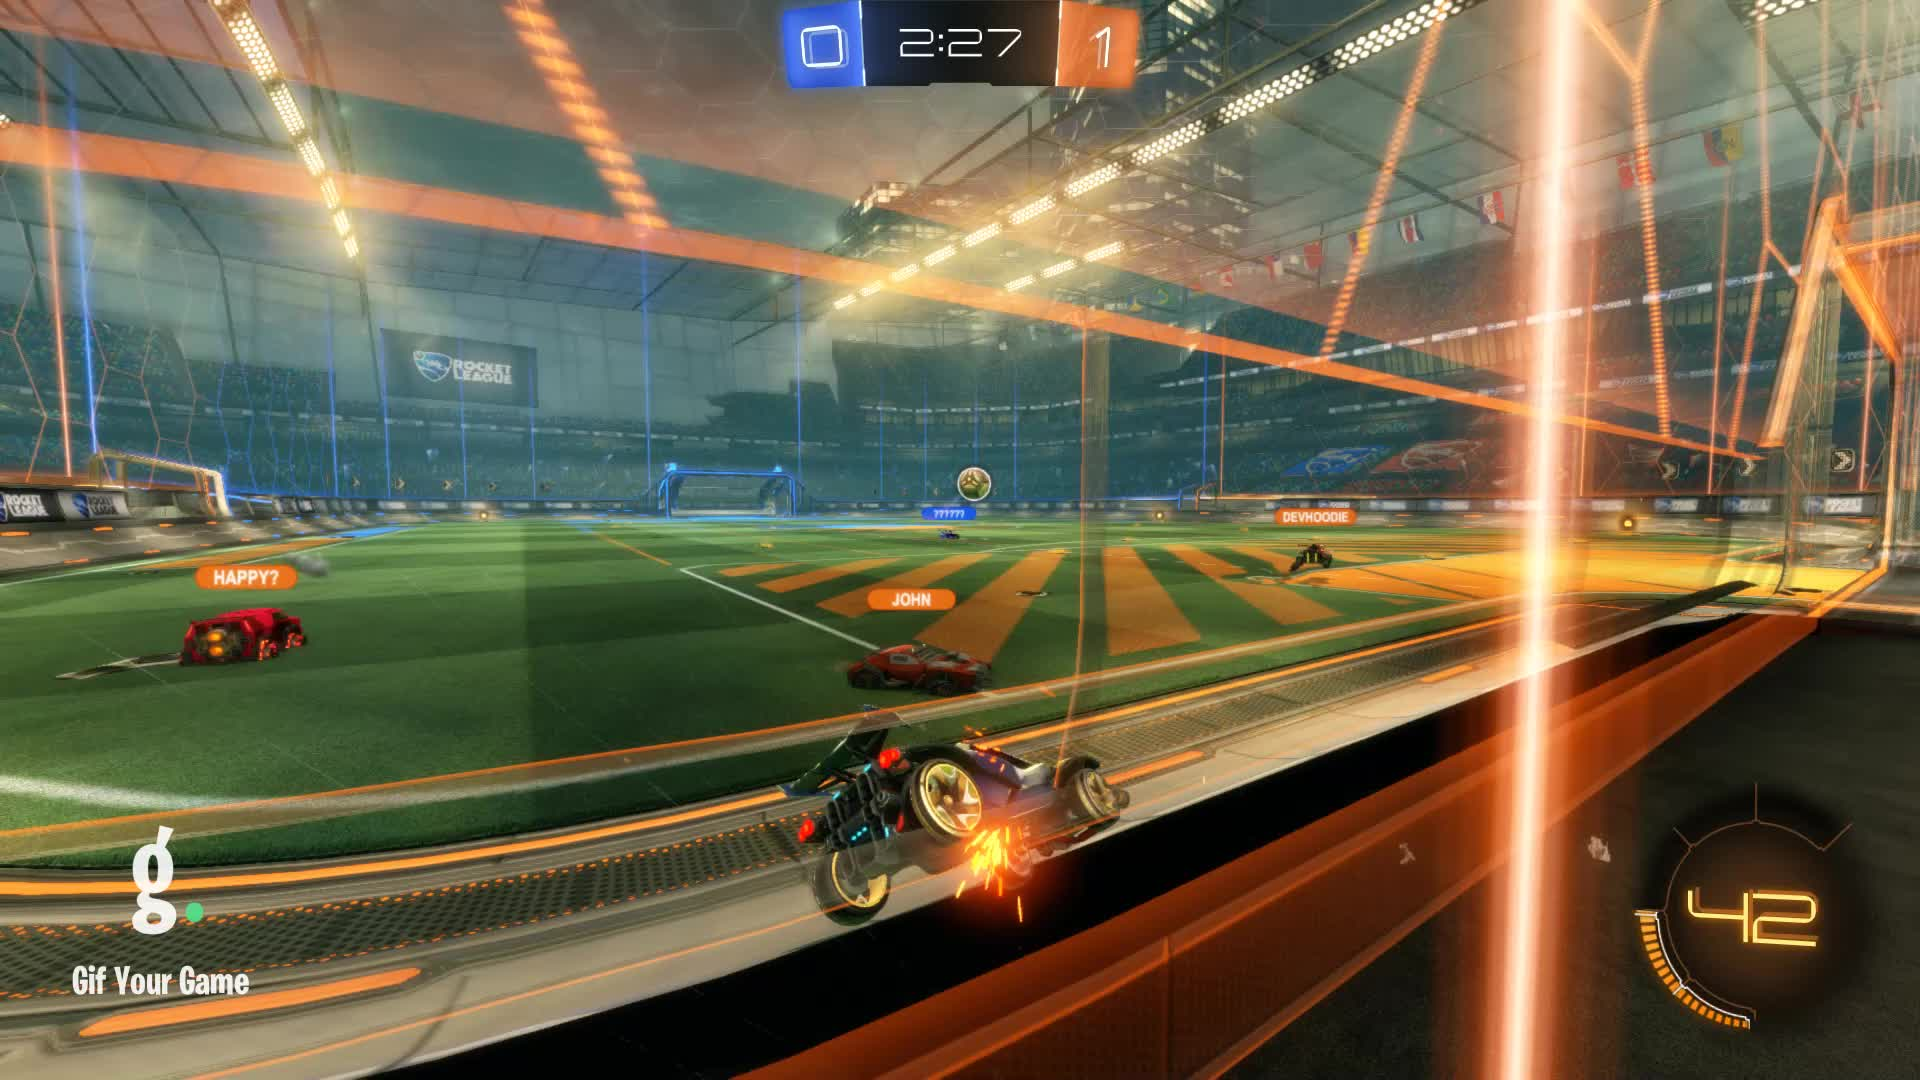 Gif Your Game, GifYourGame, Goal, ItWas...Justified, Rocket League, RocketLeague, Goal 2: ItWas...Justified GIFs